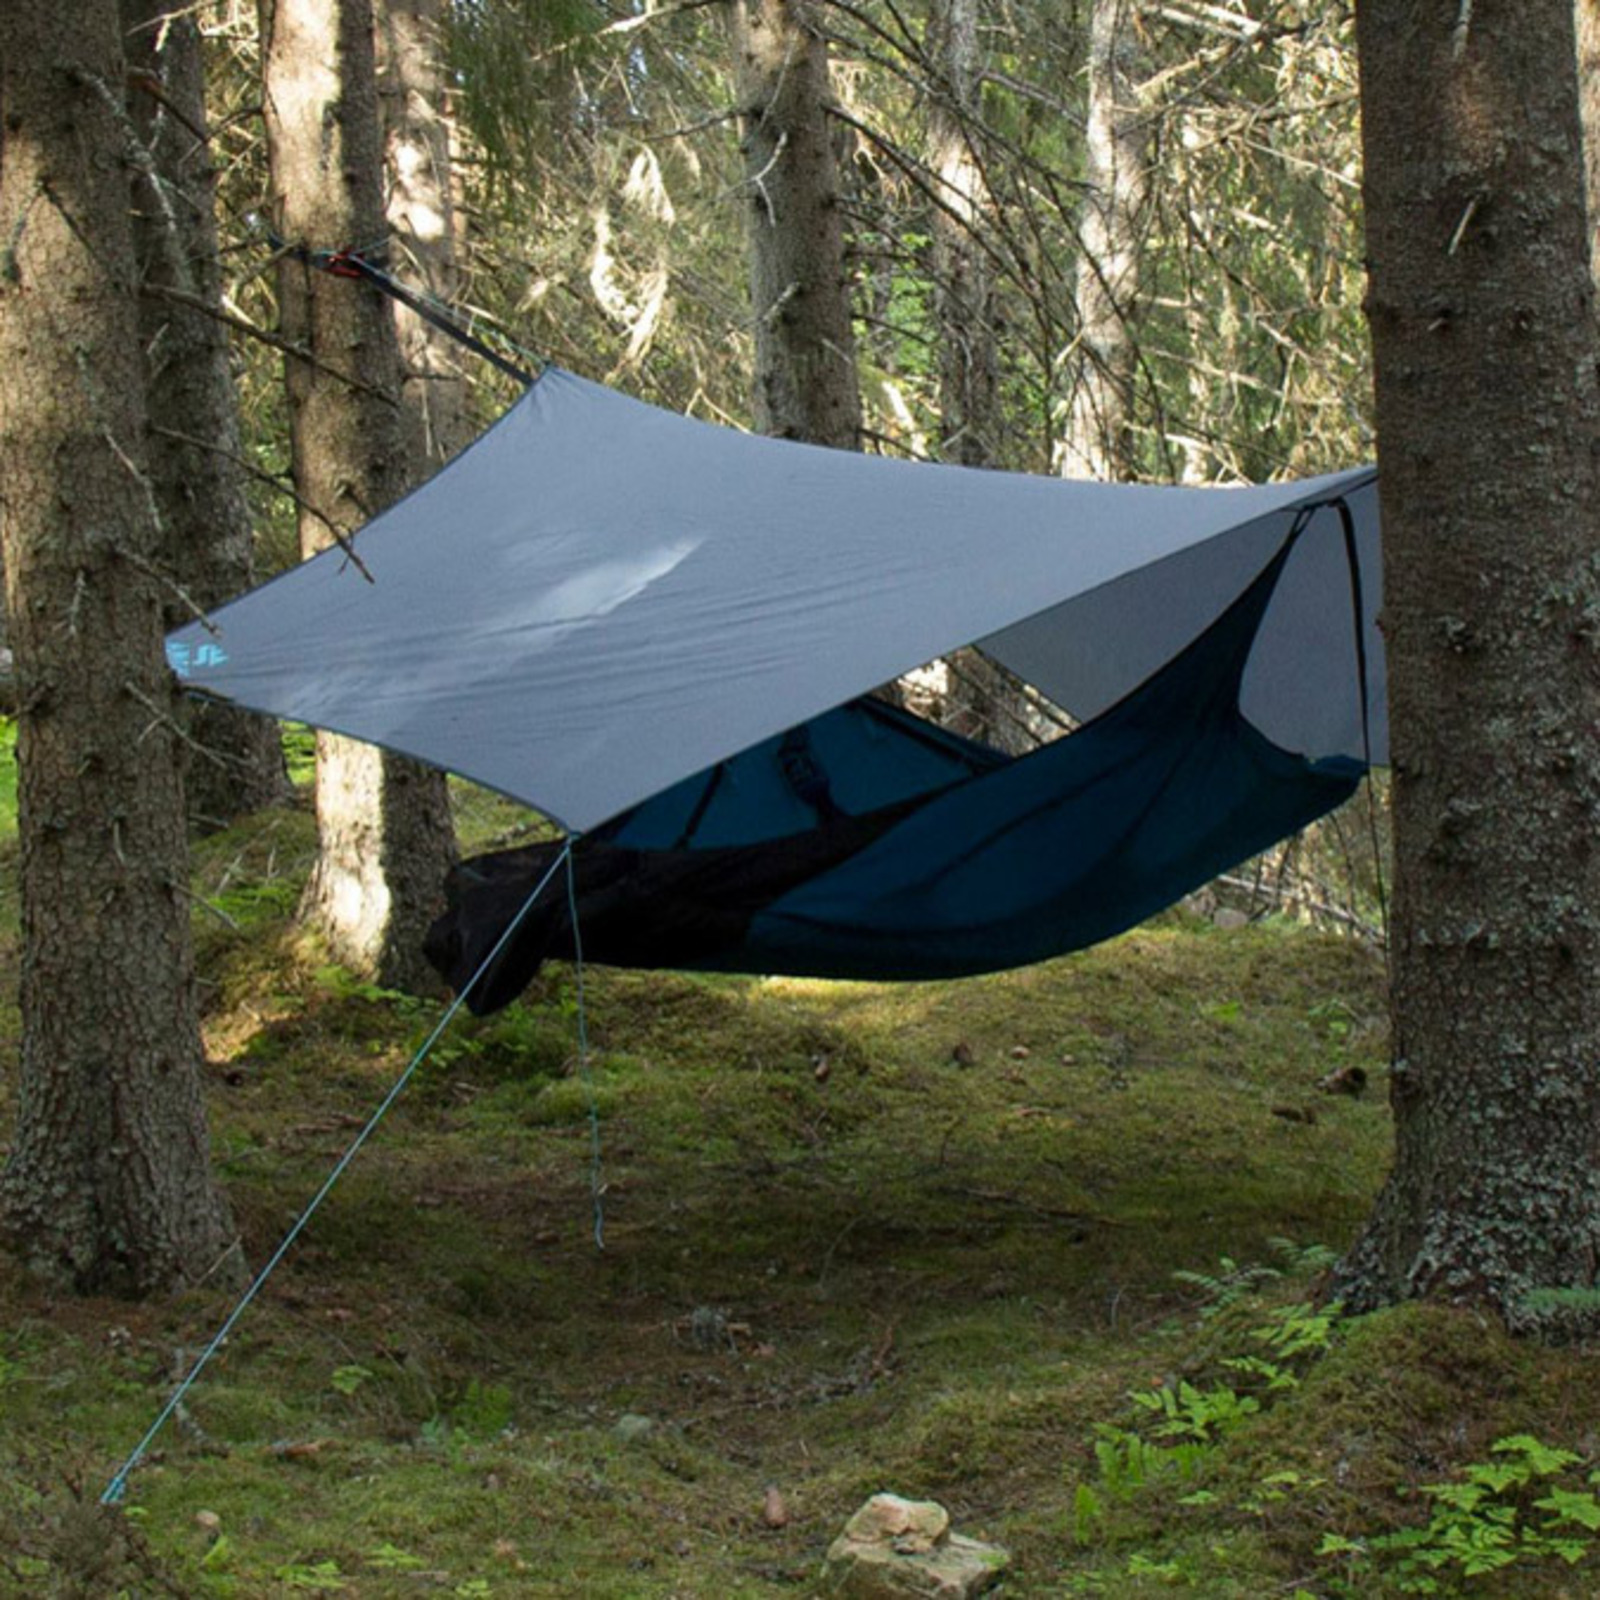 & Amoku0027s Draumr the Tent-Hammock Hybrid - Cool Hunting